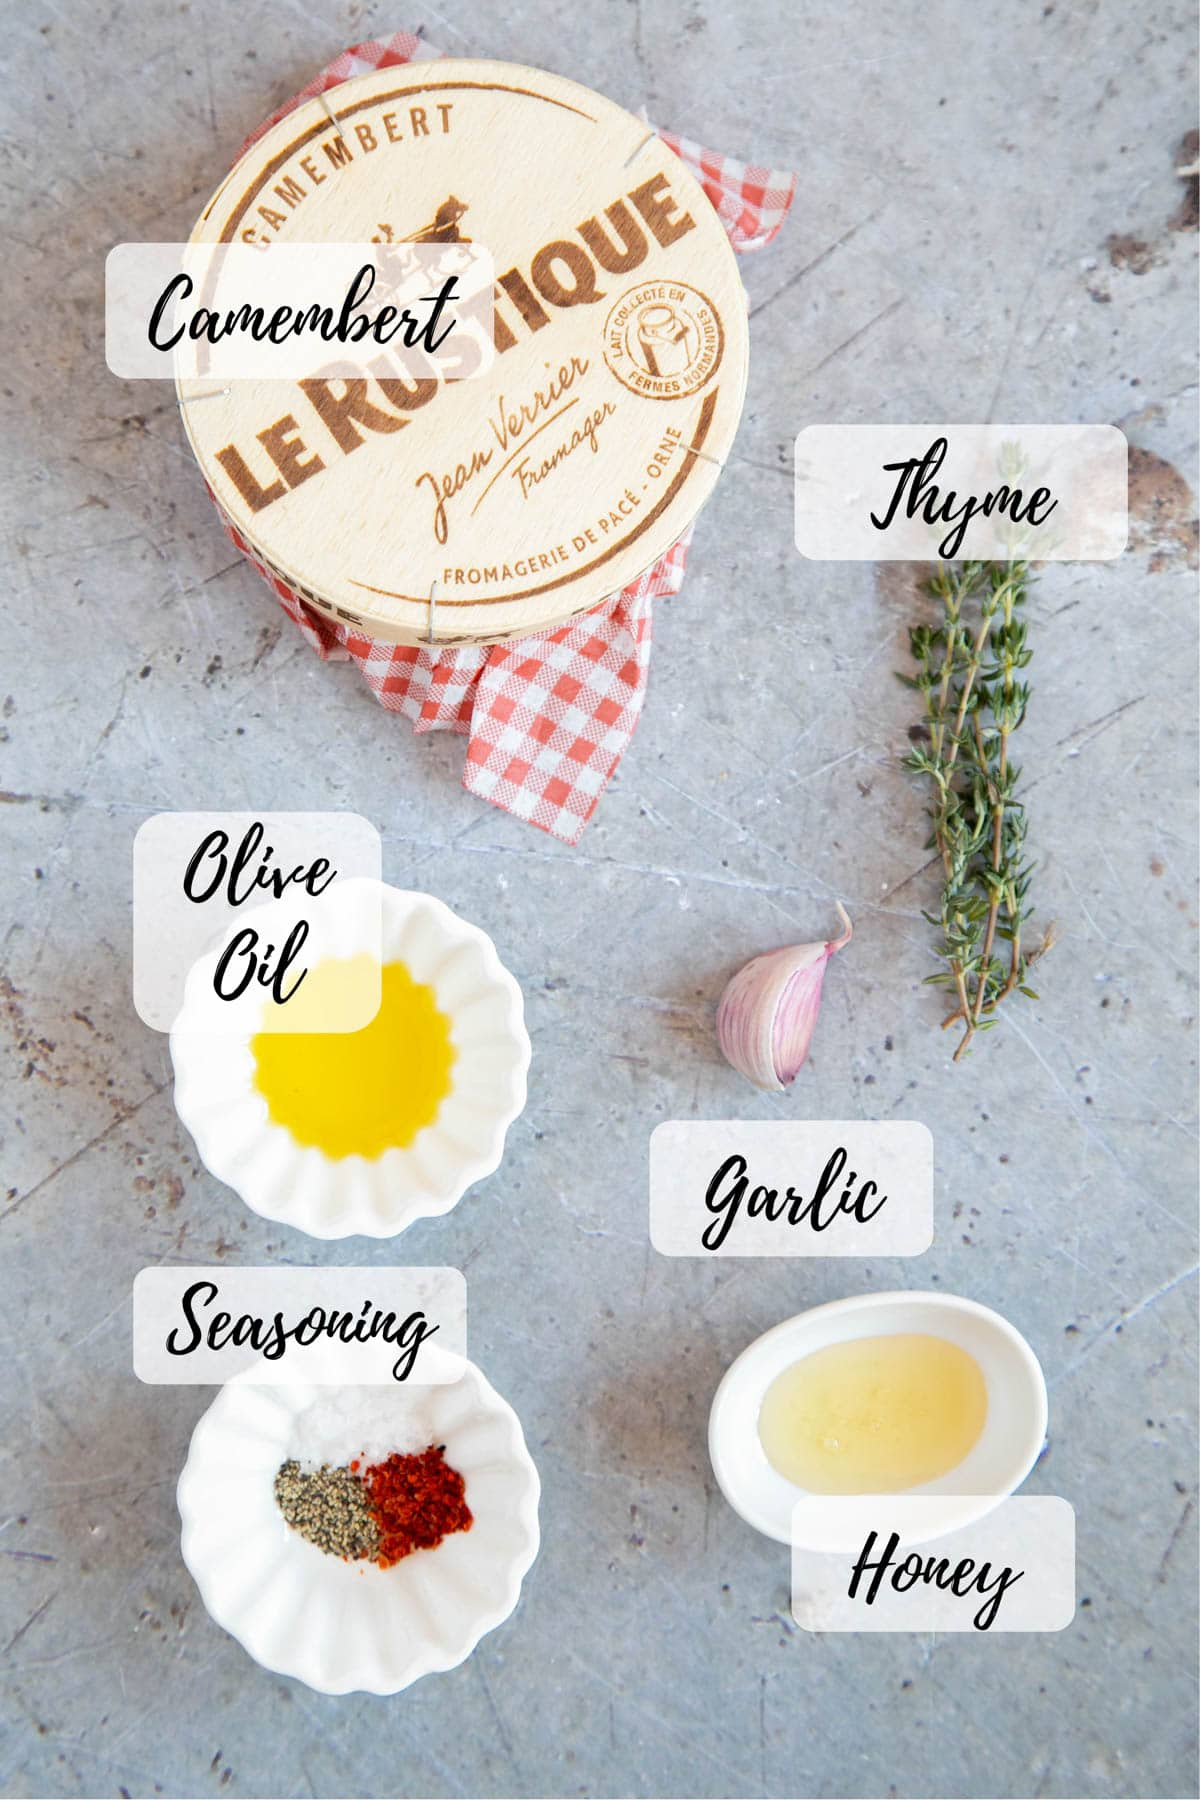 A whole camembert, thyme, a garlic clove, olive oil, seasoning and some honey: text overlay lists the ingredient names